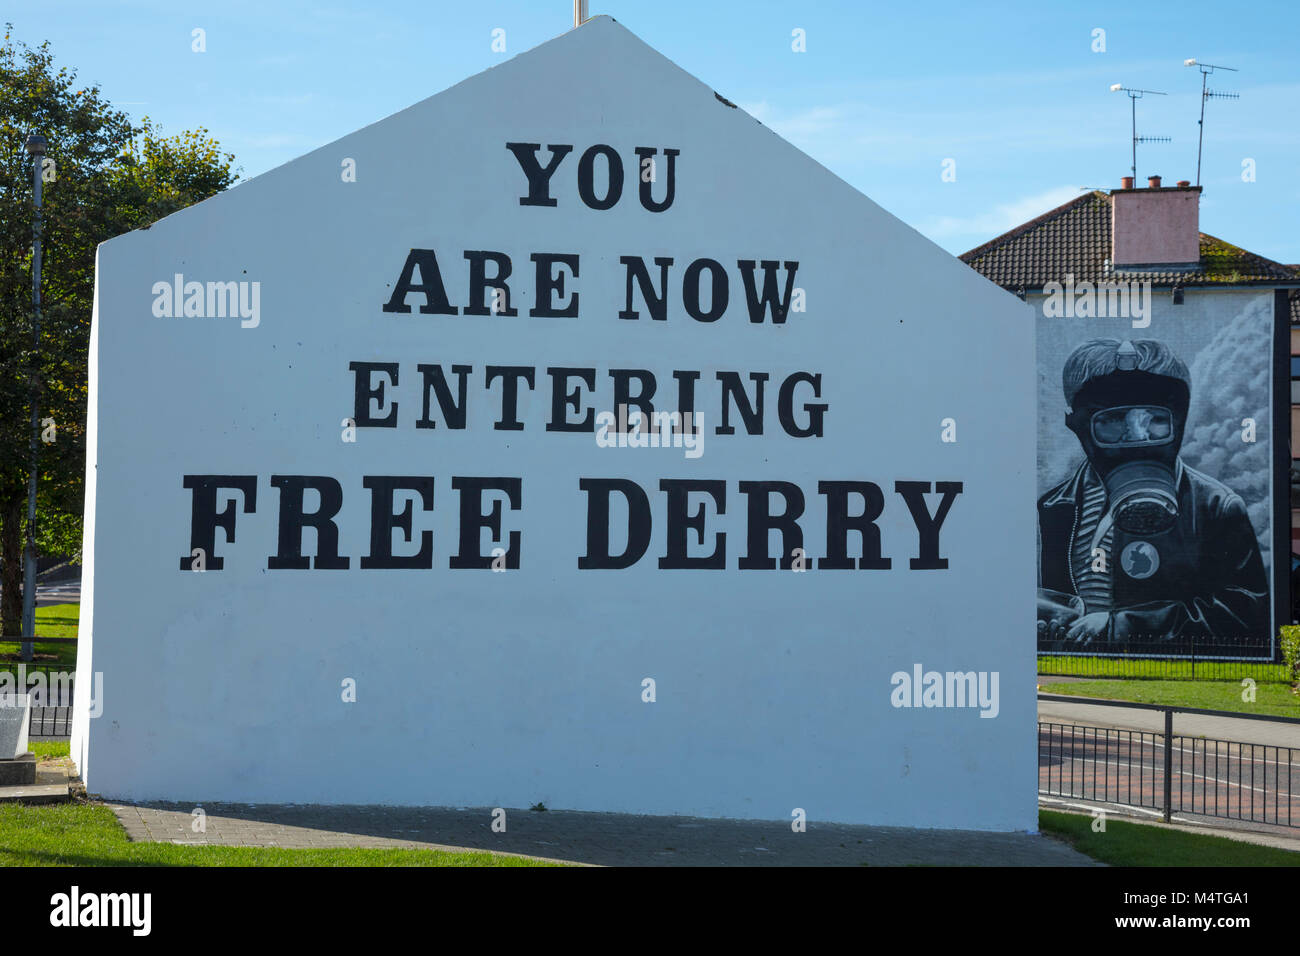 Free Derry Corner in the Bogside, Derry city, County Derry, Northern Ireland. - Stock Image